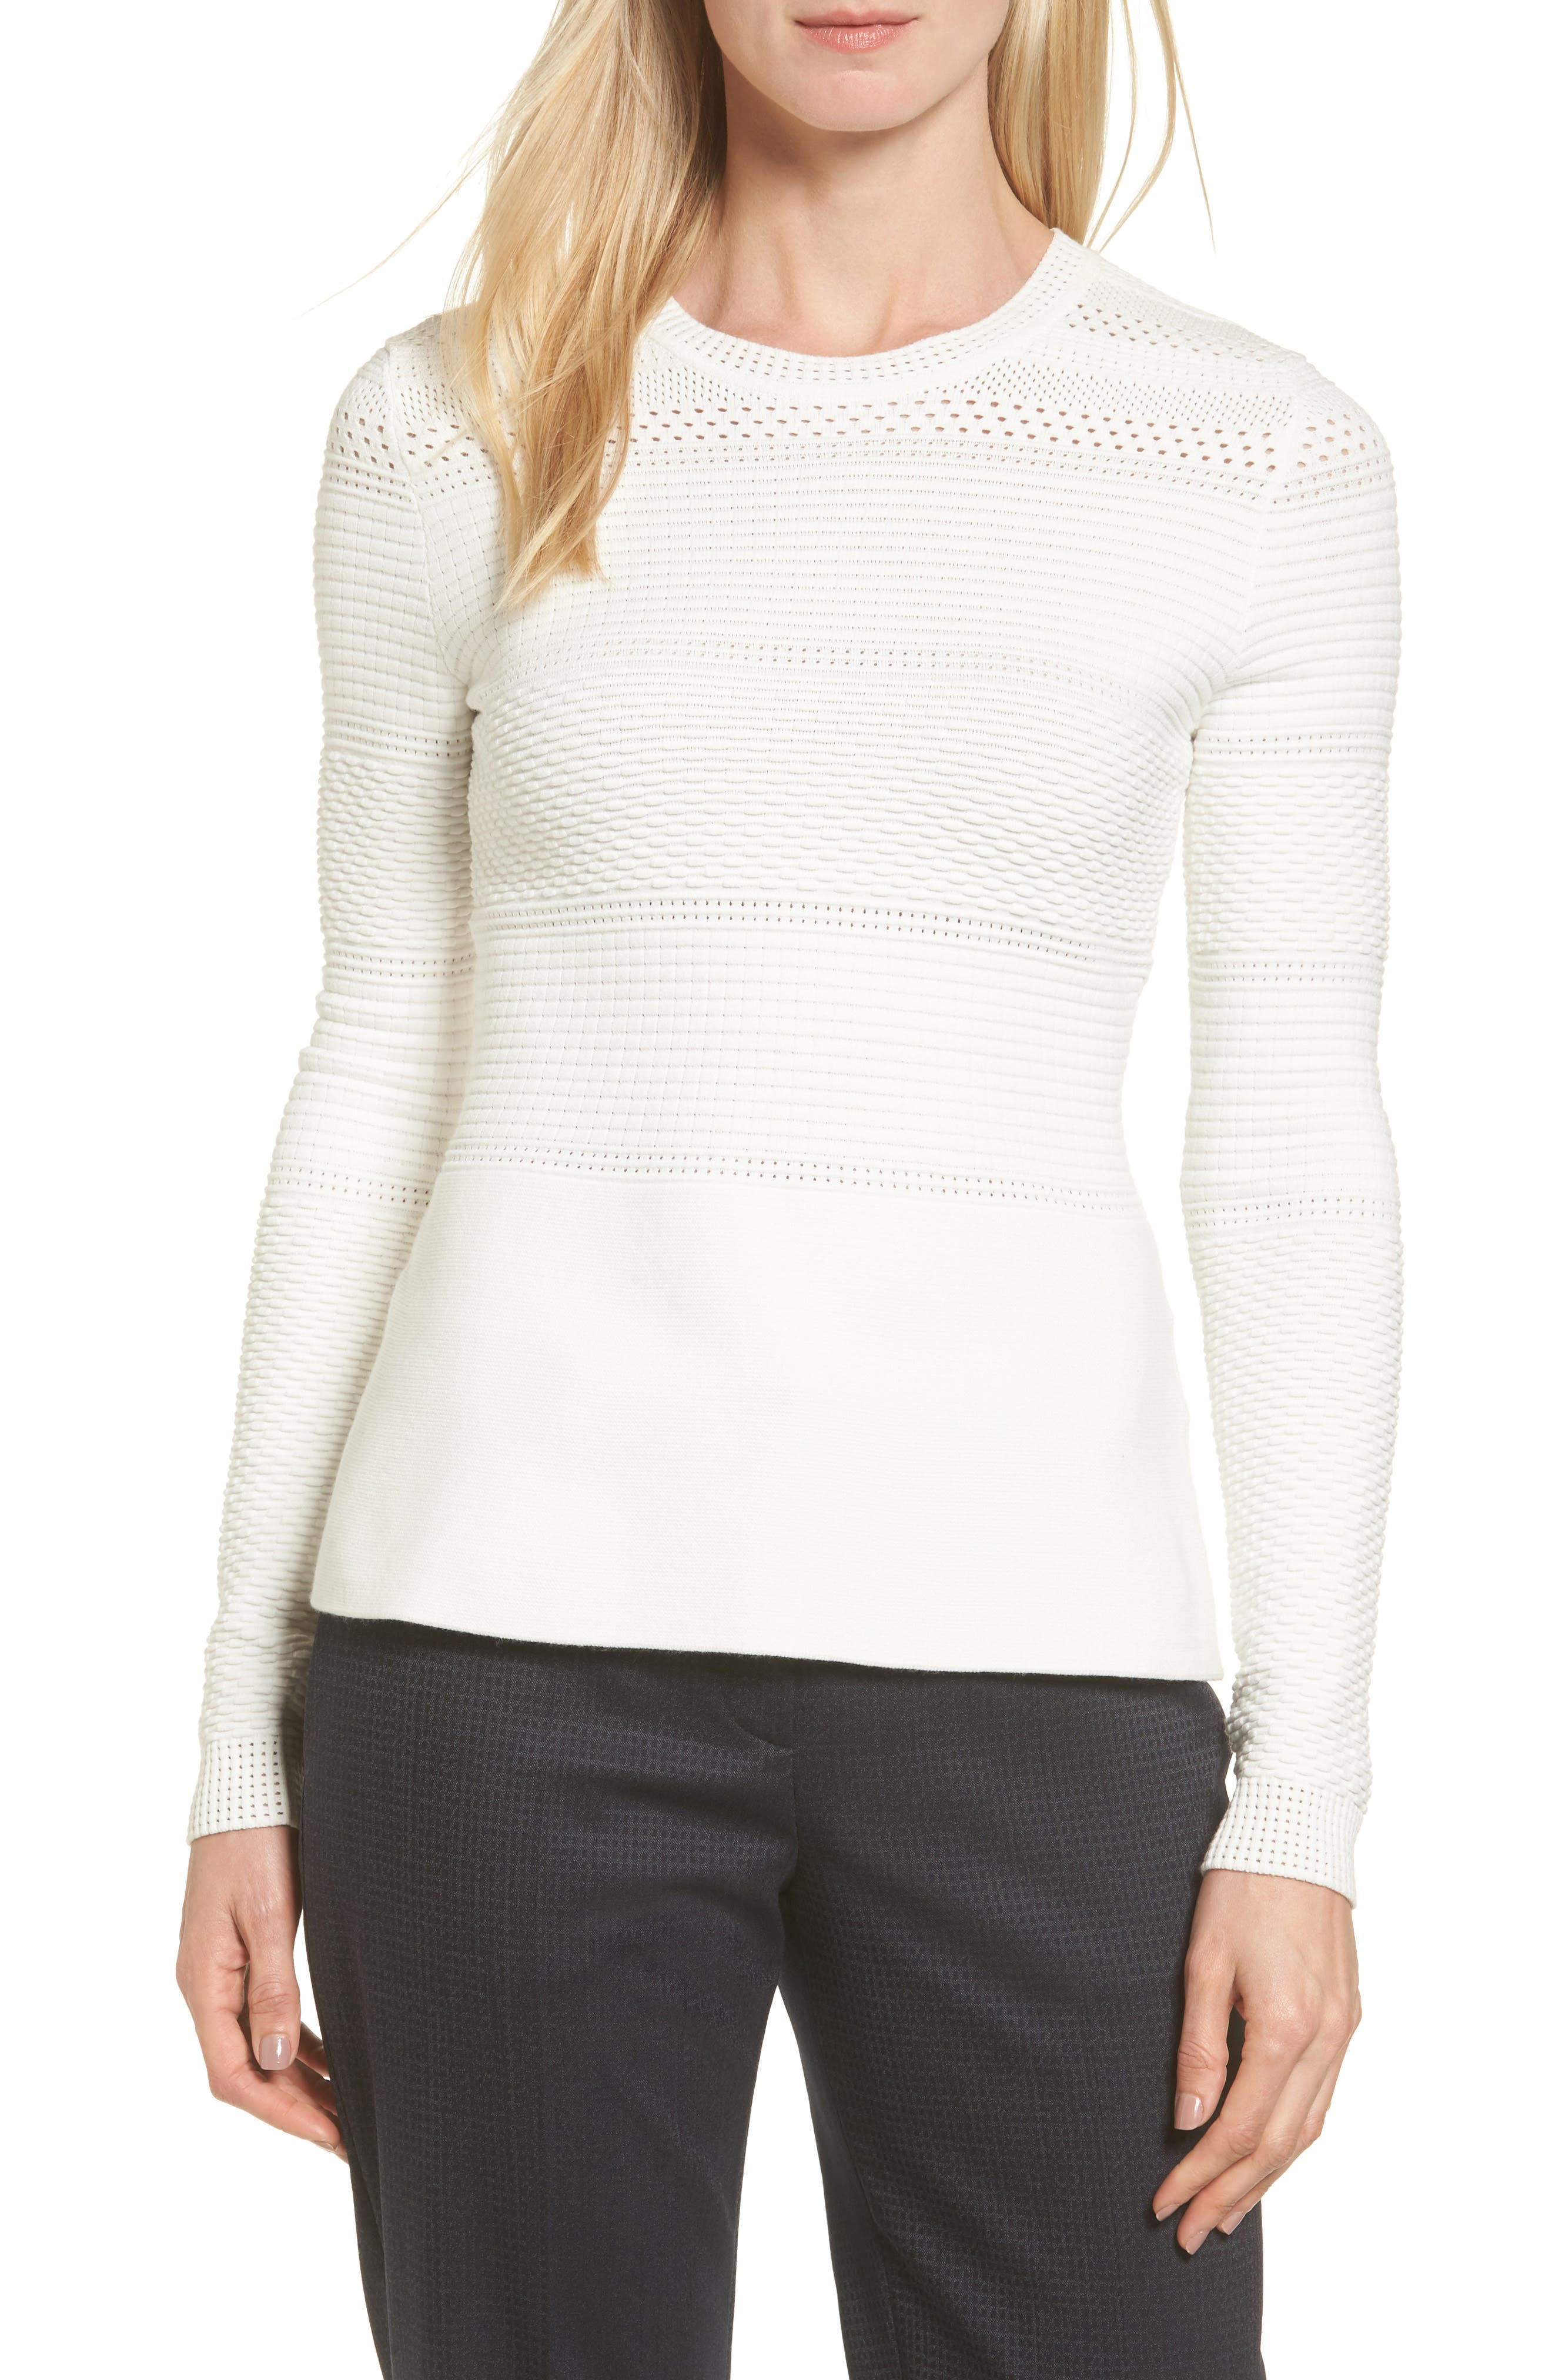 Alternate Image 1 Selected - BOSS Funda Mixed Stitch Sweater